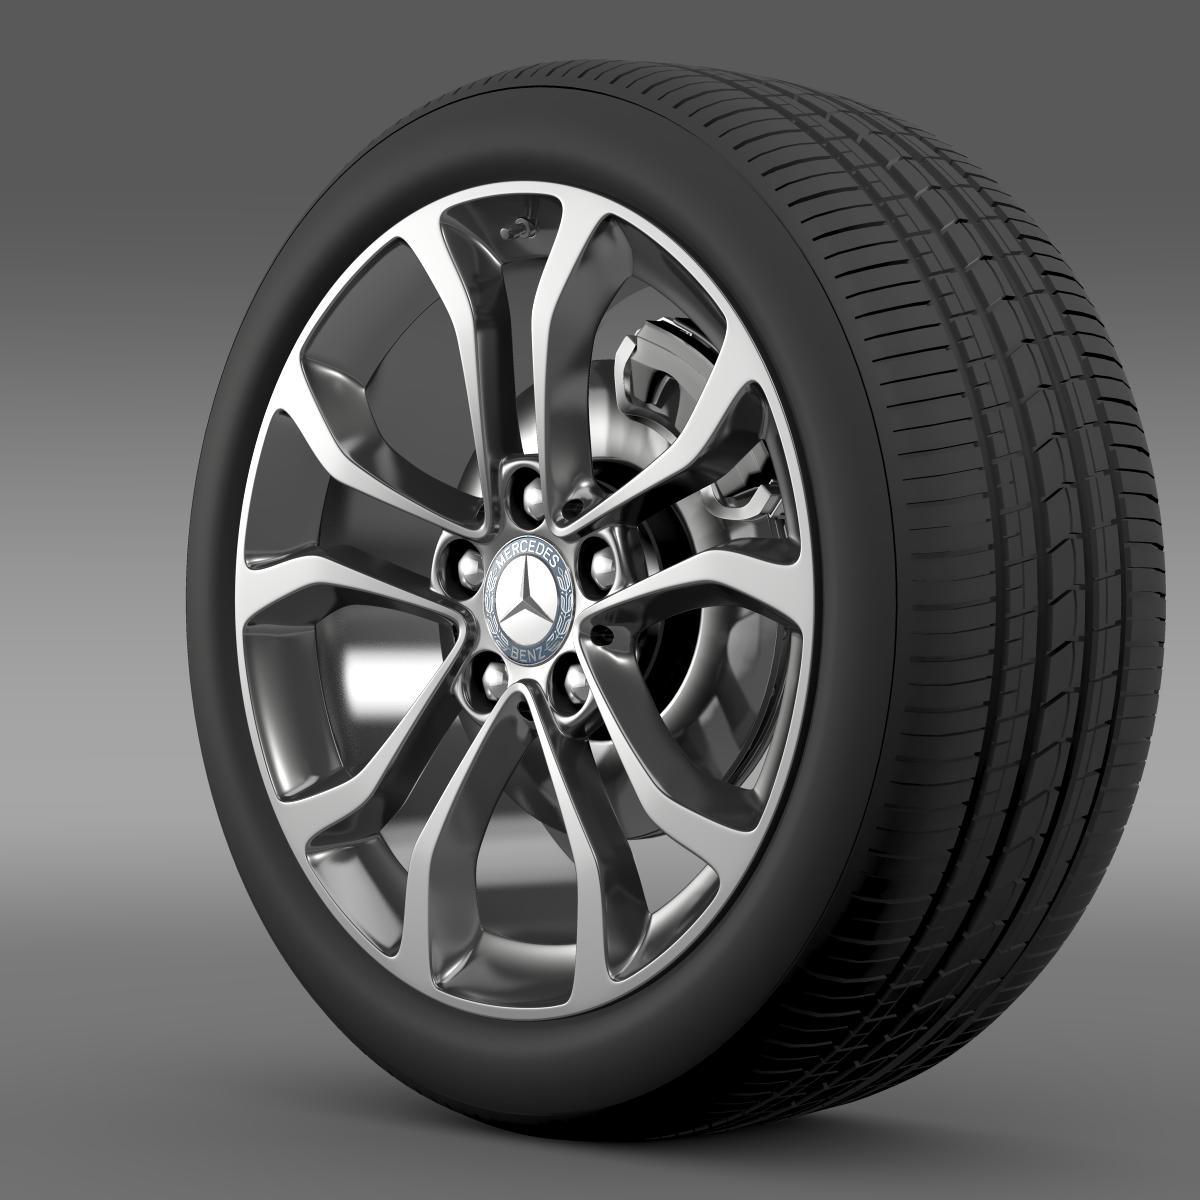 mercedes benz c 220 wheel 3d model 3ds max fbx c4d lwo ma mb hrc xsi obj 210756